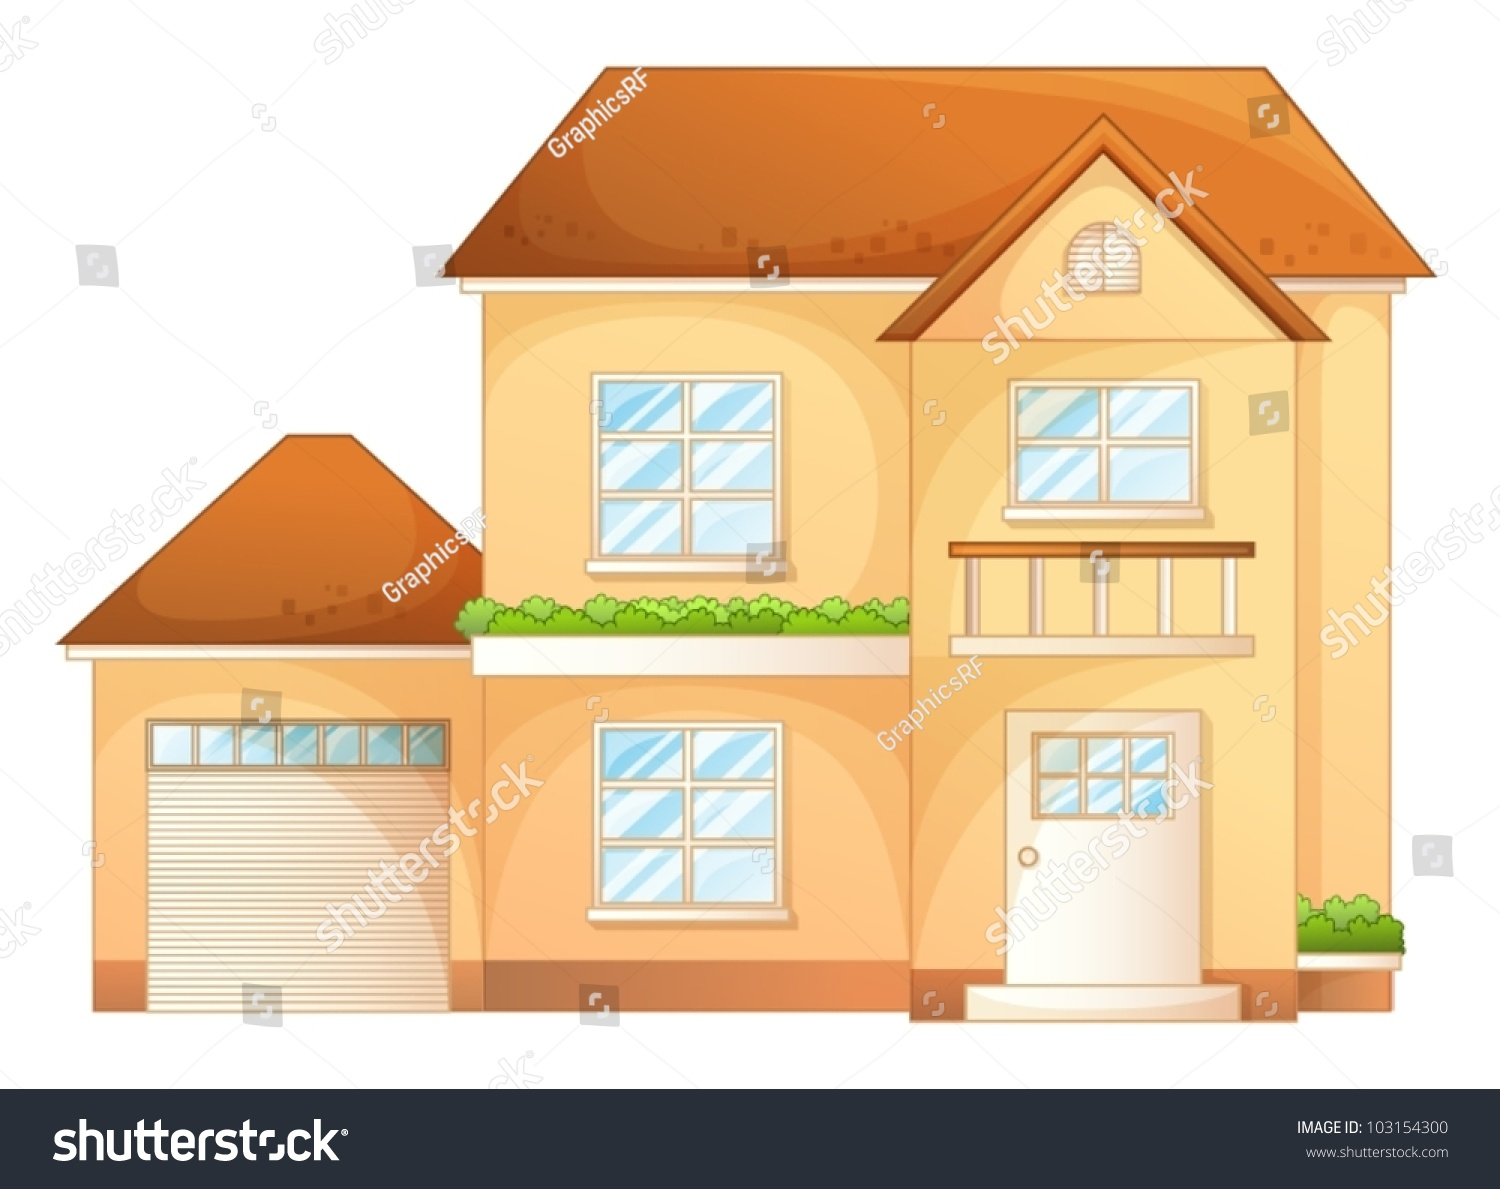 house side view clipart - photo #22